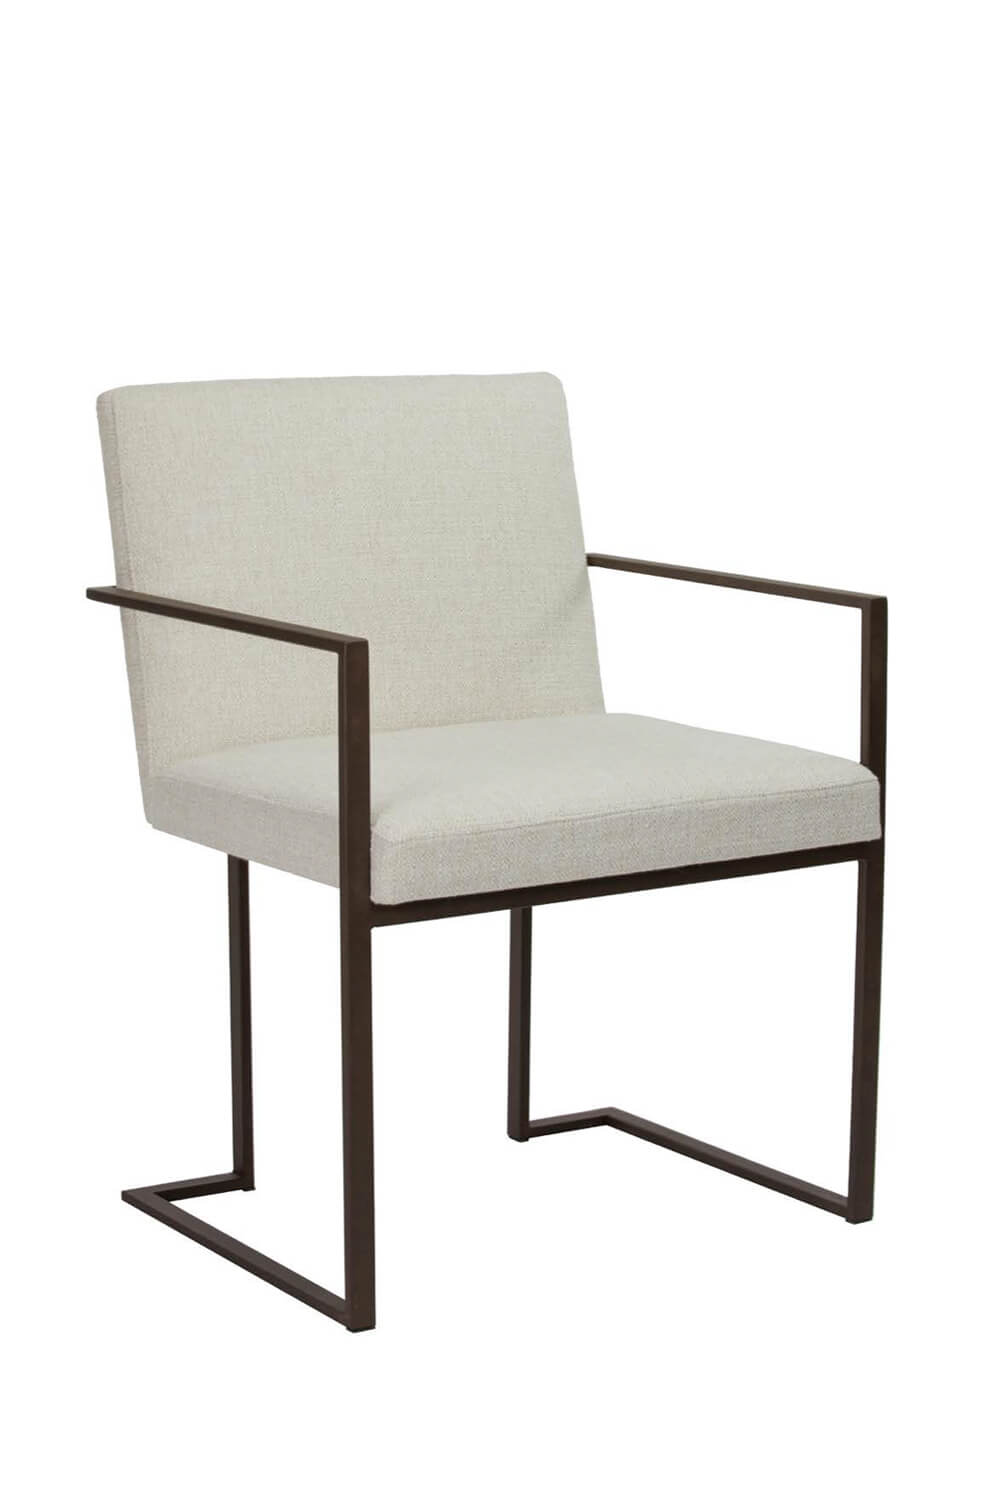 Marzan Modern Upholstered Dining Chair